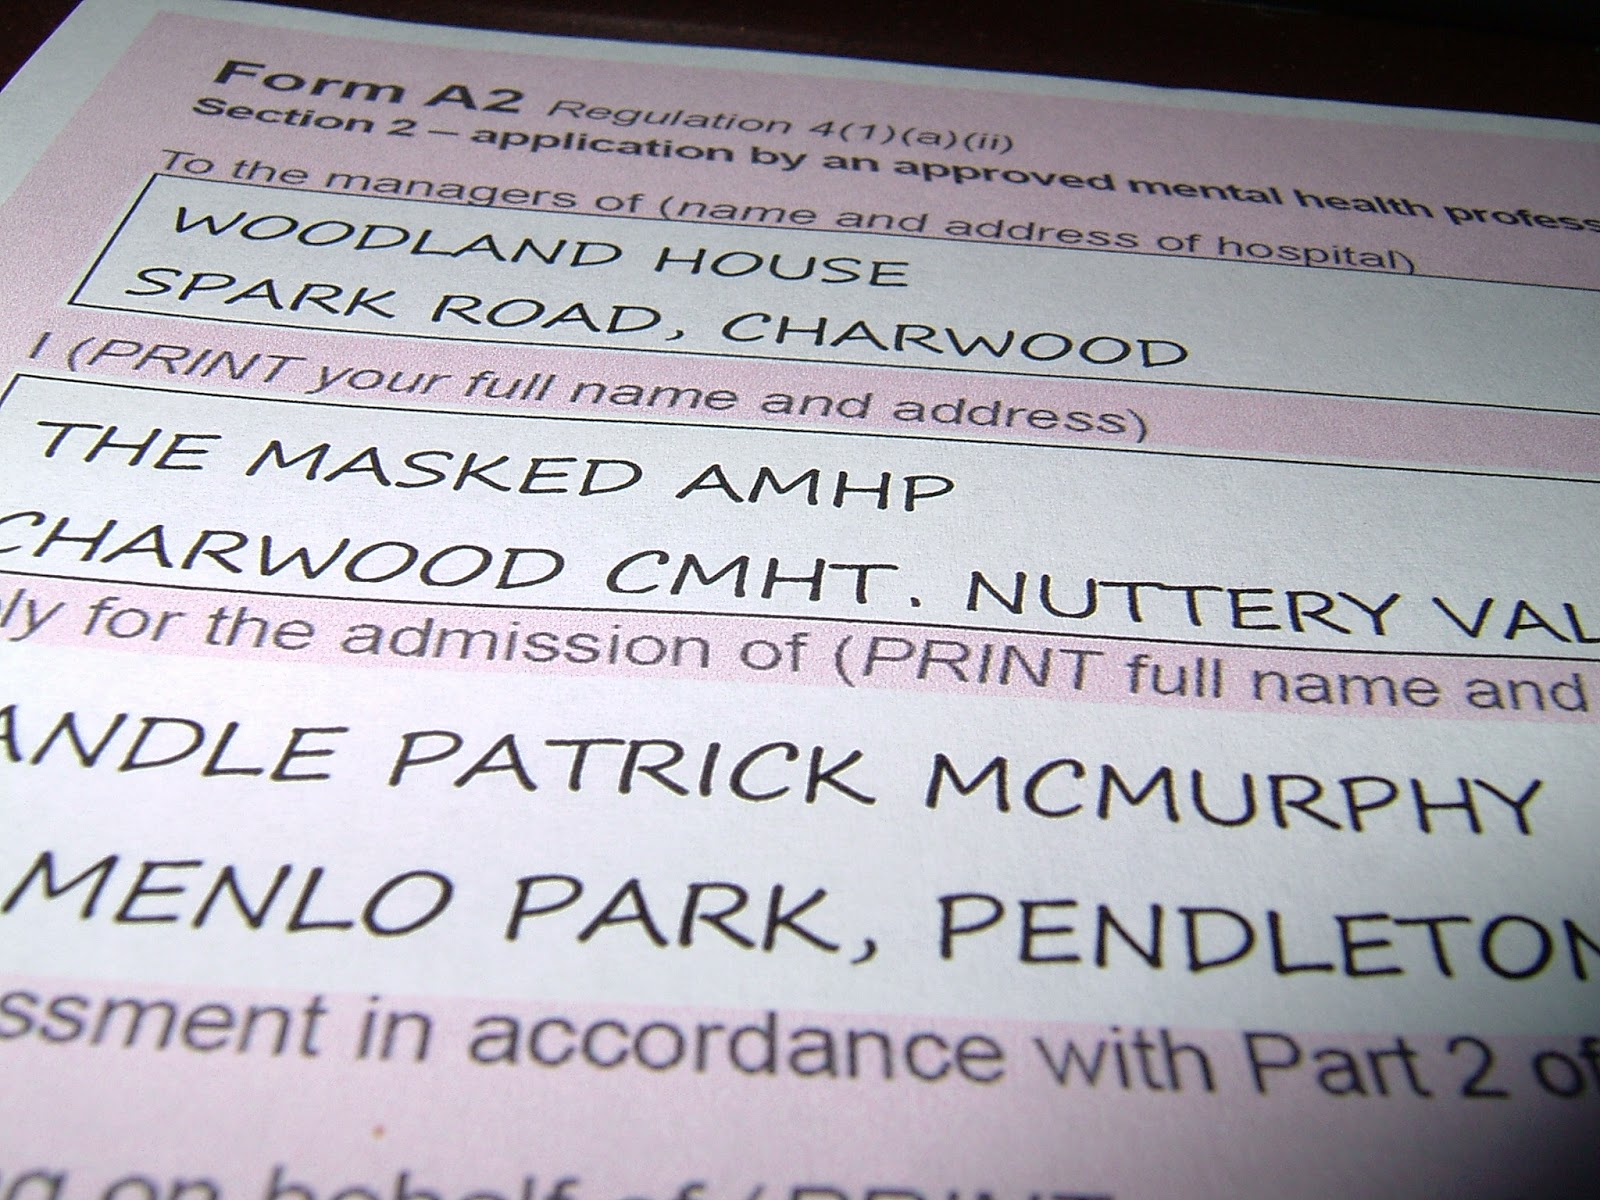 The Masked AMHP: Who Should Sign the Section Forms: the ...